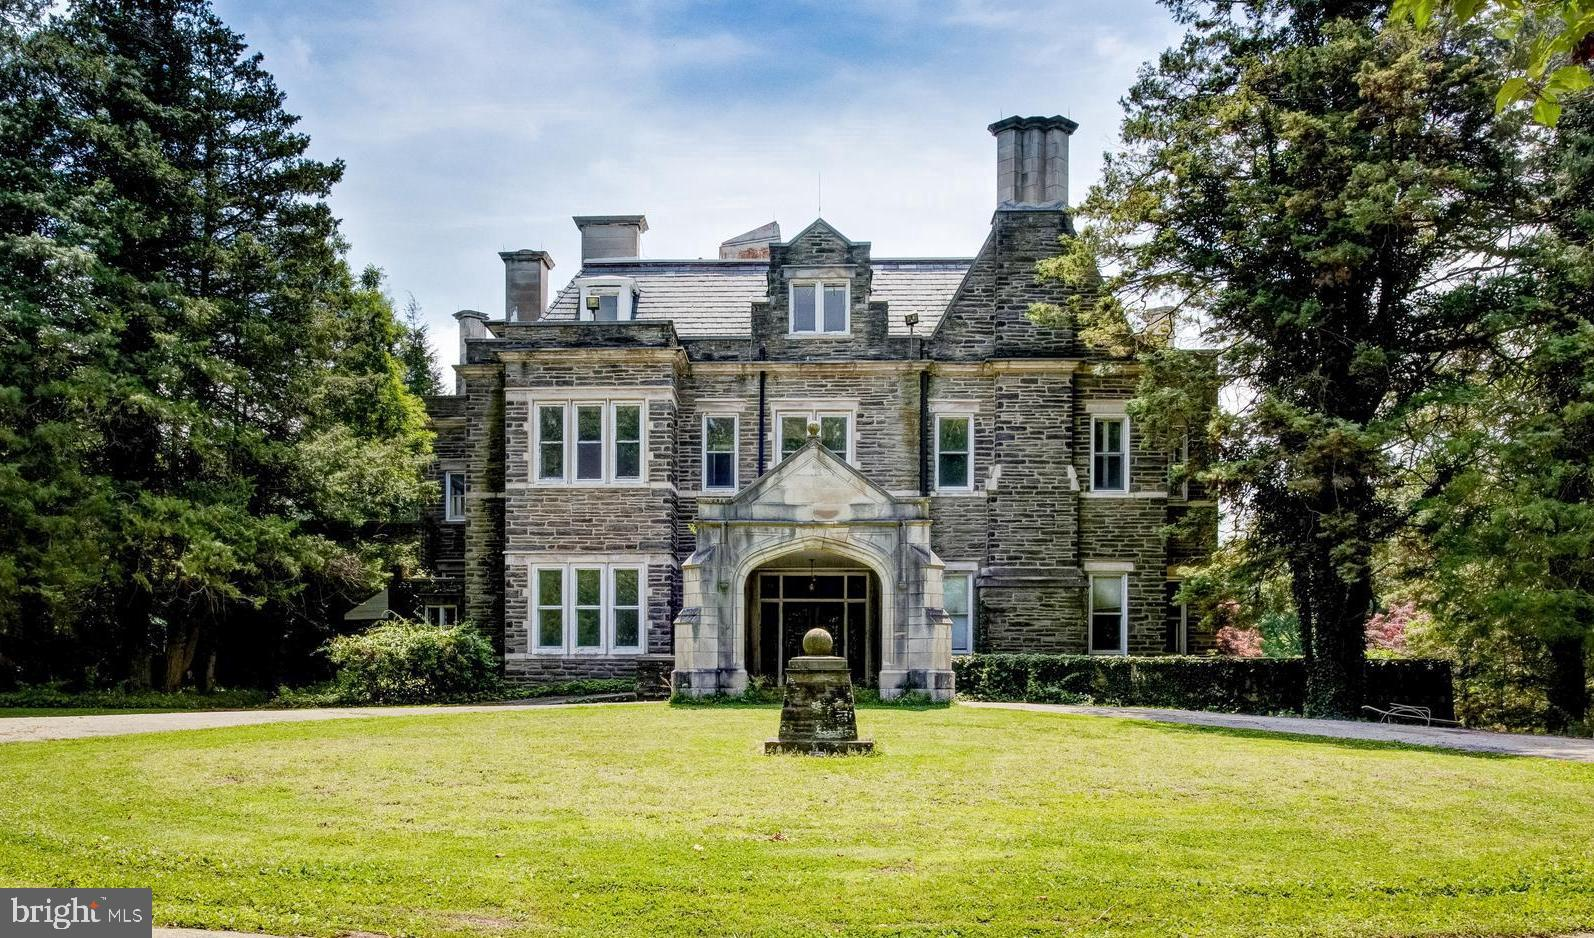 Once a decade a residence like this comes to the market.  Greylock Mansion is a 25 room 16,500 sq ft, 8 bedroom, 4 full and 4 half bathroom mansion that sits on 7 acres of beautiful land bordering the 1,800 acres of Wissahickon Valley Park.  The tree lined winding driveway leads to a grand circle and covered entrance of this stone masterpiece originally built in 1909 by steel magnate Henry A. Laughlin.  The gorgeous exterior stone was quarried on site to construct this marvel.  The main house stands on a wide terrace with floor footprint sizes between 5,000 and 3,290 square including the walk out basement floor which has usable desirable ceiling heights.  The grand covered entrance opens to the gorgeous marble tiled  floors of the grand hall of the house and gives a clear span view to the other side of the house and it's giant entertaining patio.  The ceiling height, grandeur of the marble tile, the white marble stairs, and the windows everywhere show the pure class of this building and it's potential.  Luxuriously large living and dining rooms flank the exterior patio overlooking the sprawling 3-4 acre front lawn and the views provide great site of the Wissahickon Valley.  Many of these rooms still have original historic details that can and should be highlighted by her next owner.  The nearby carriage house is approximately 4500 sq ft with garage parking and it has an abundance of possibilities from private office space to in-law residence to work shop or more.  What is more good news is that the property taxes are reasonably low because of the conservancy easement on the property.  Enjoy the tree lined abundant land with taxes equivalent to a home much smaller in size.